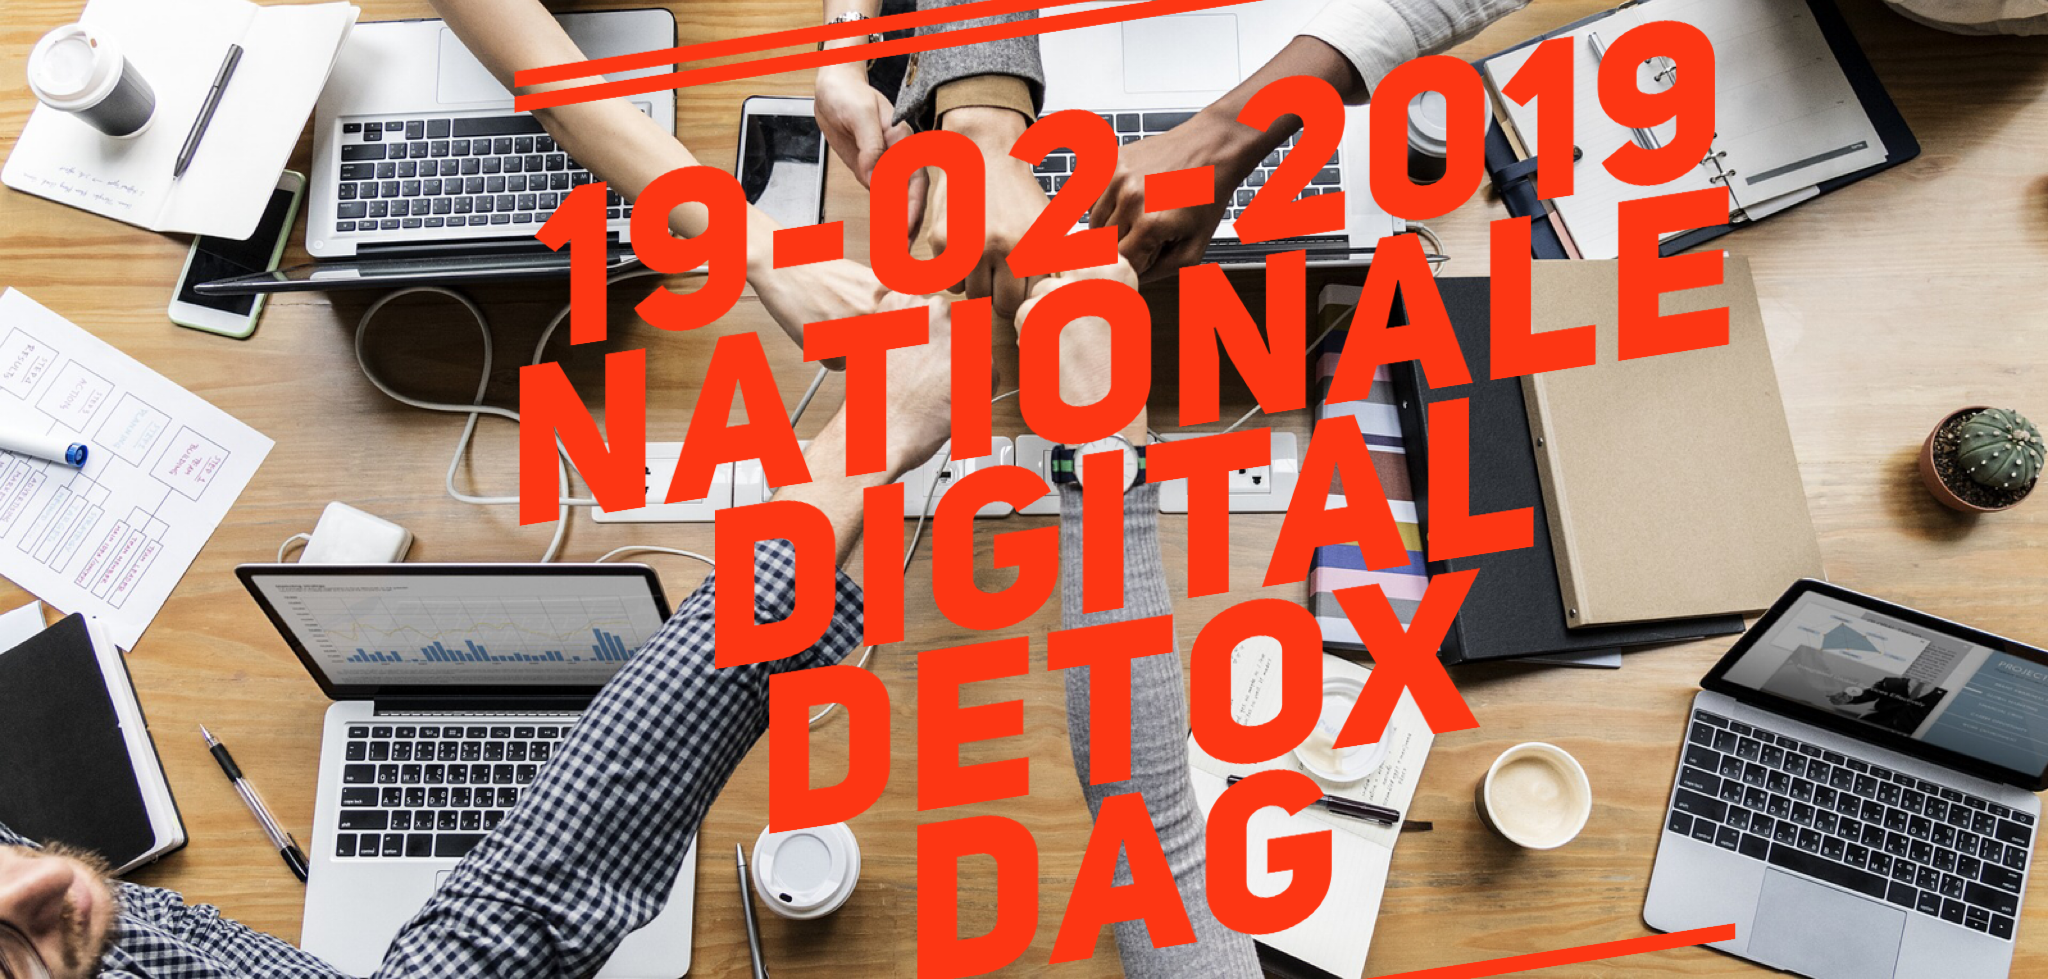 Tips om mee te doen met de Nationale Digital Detox Dag 19-02-2019 met je team en familie